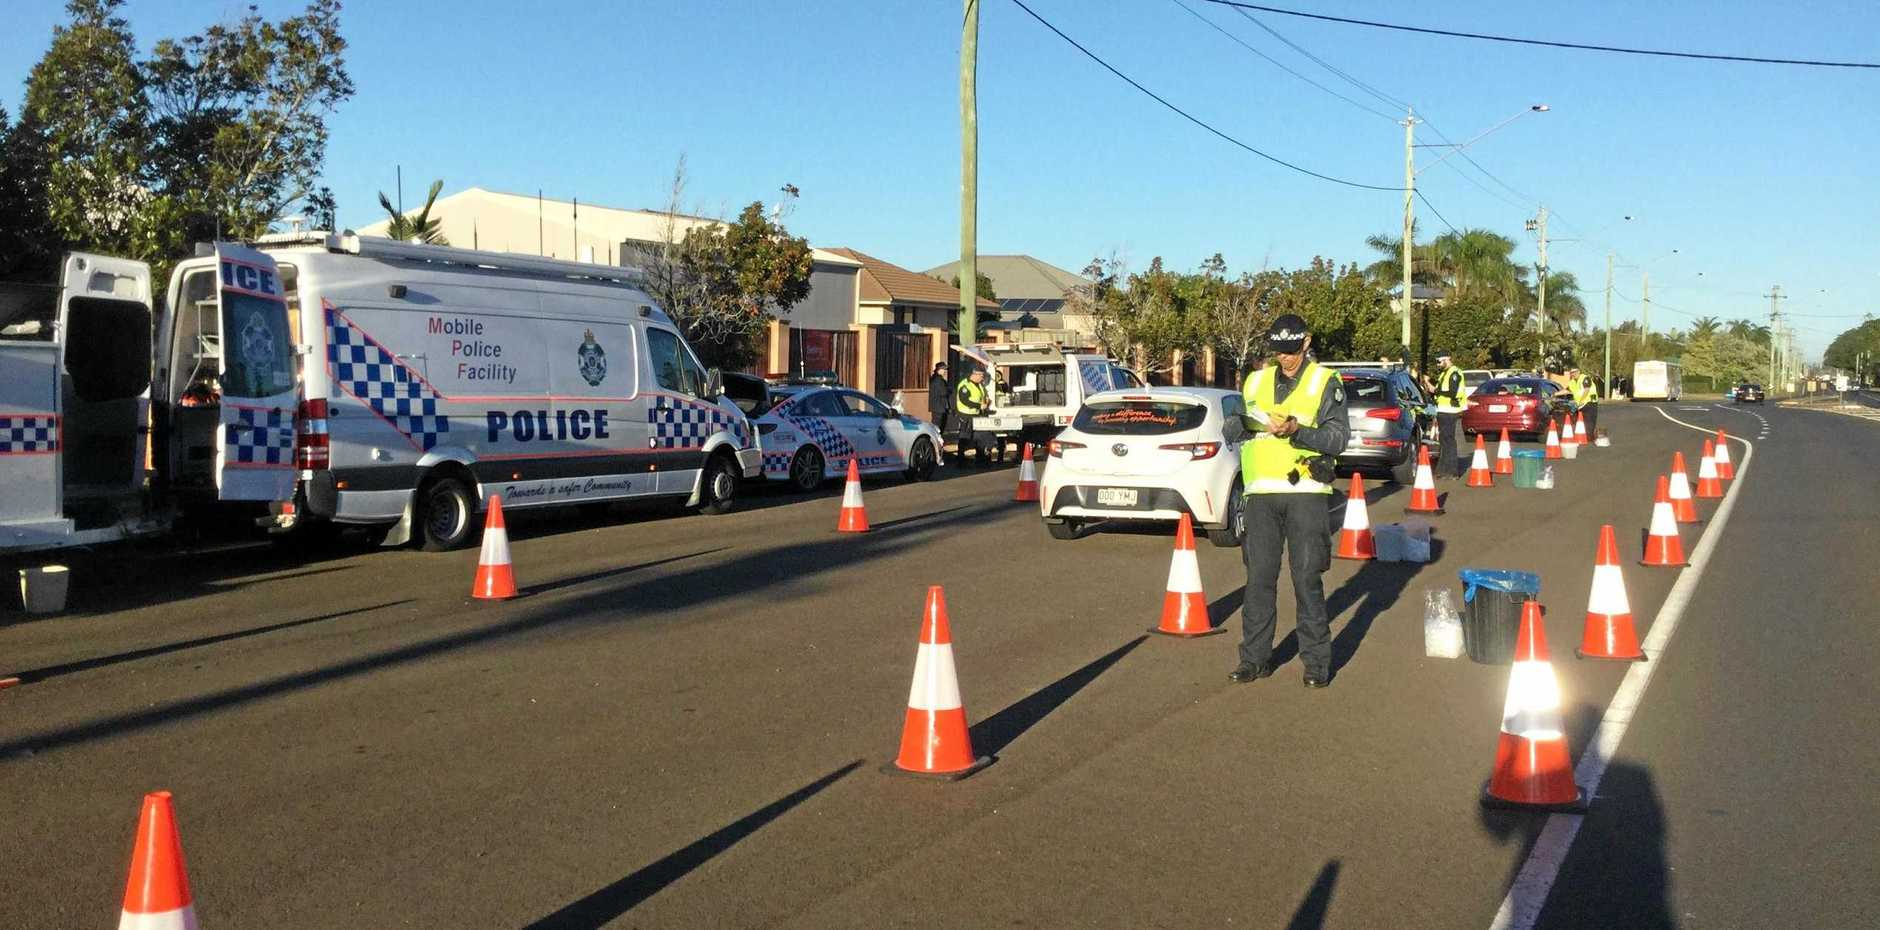 Bundaberg Police conducted an RBT operation on Bargara Rd this morning.